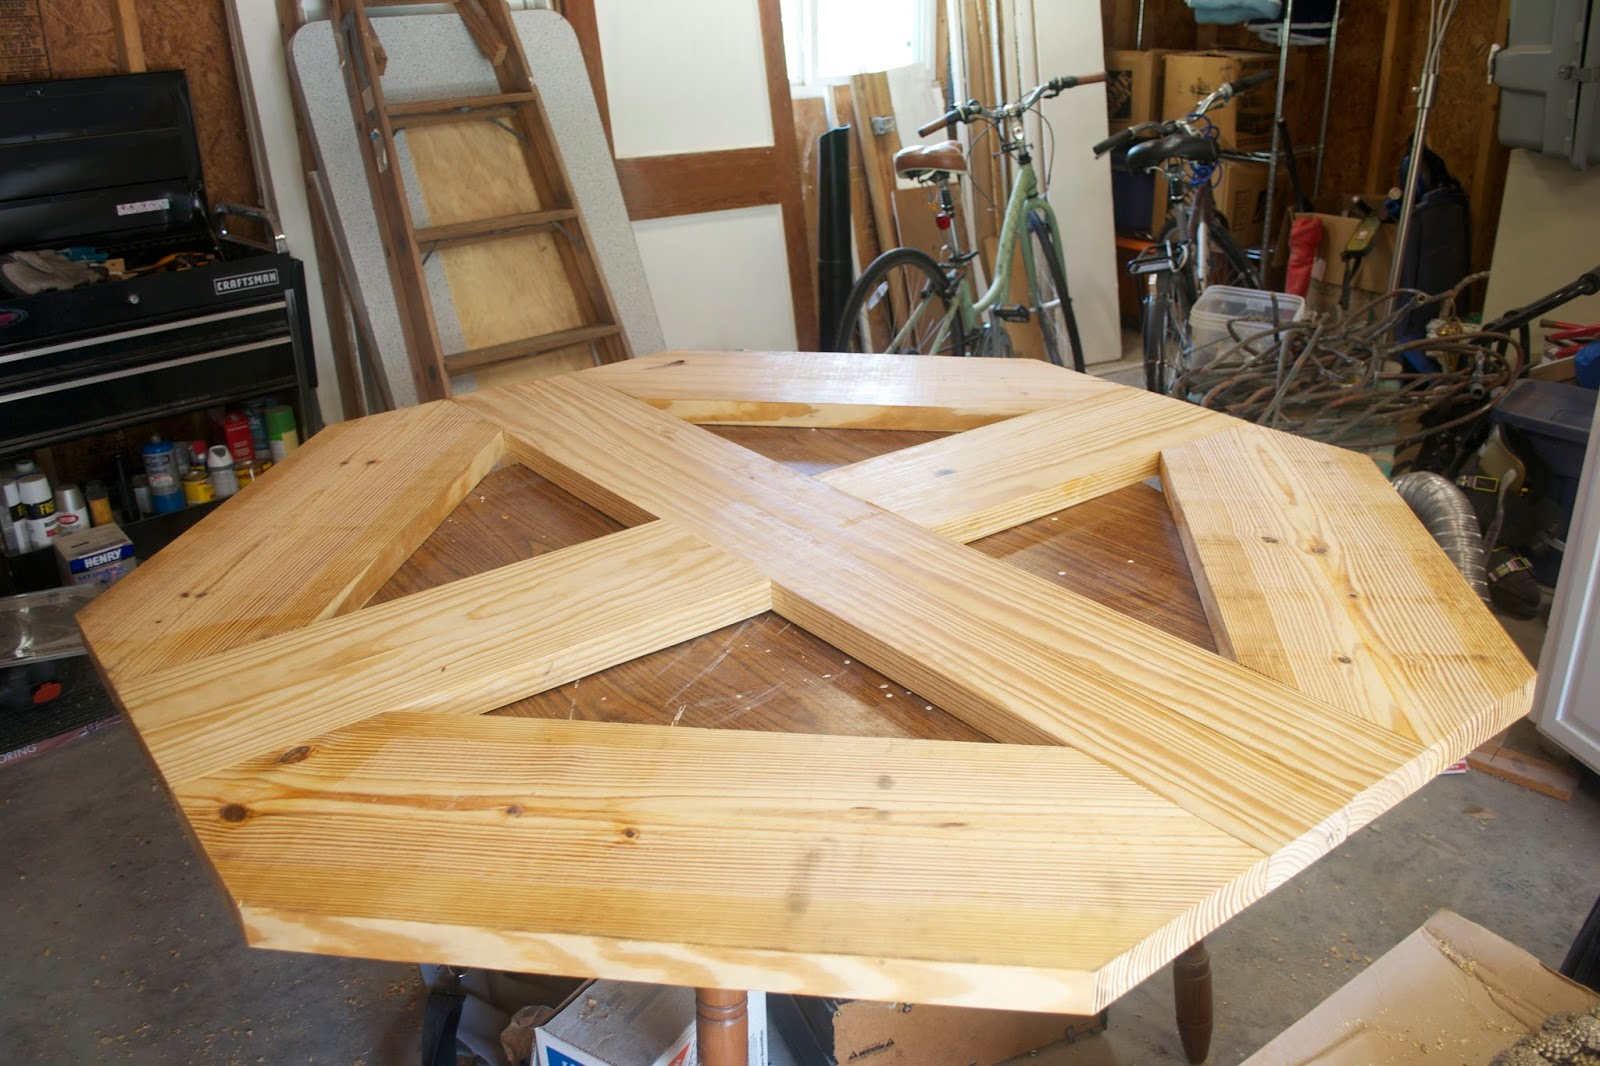 download octagonal dining table plans pdf outside playhouse plans - Diy Dining Room Table Plans